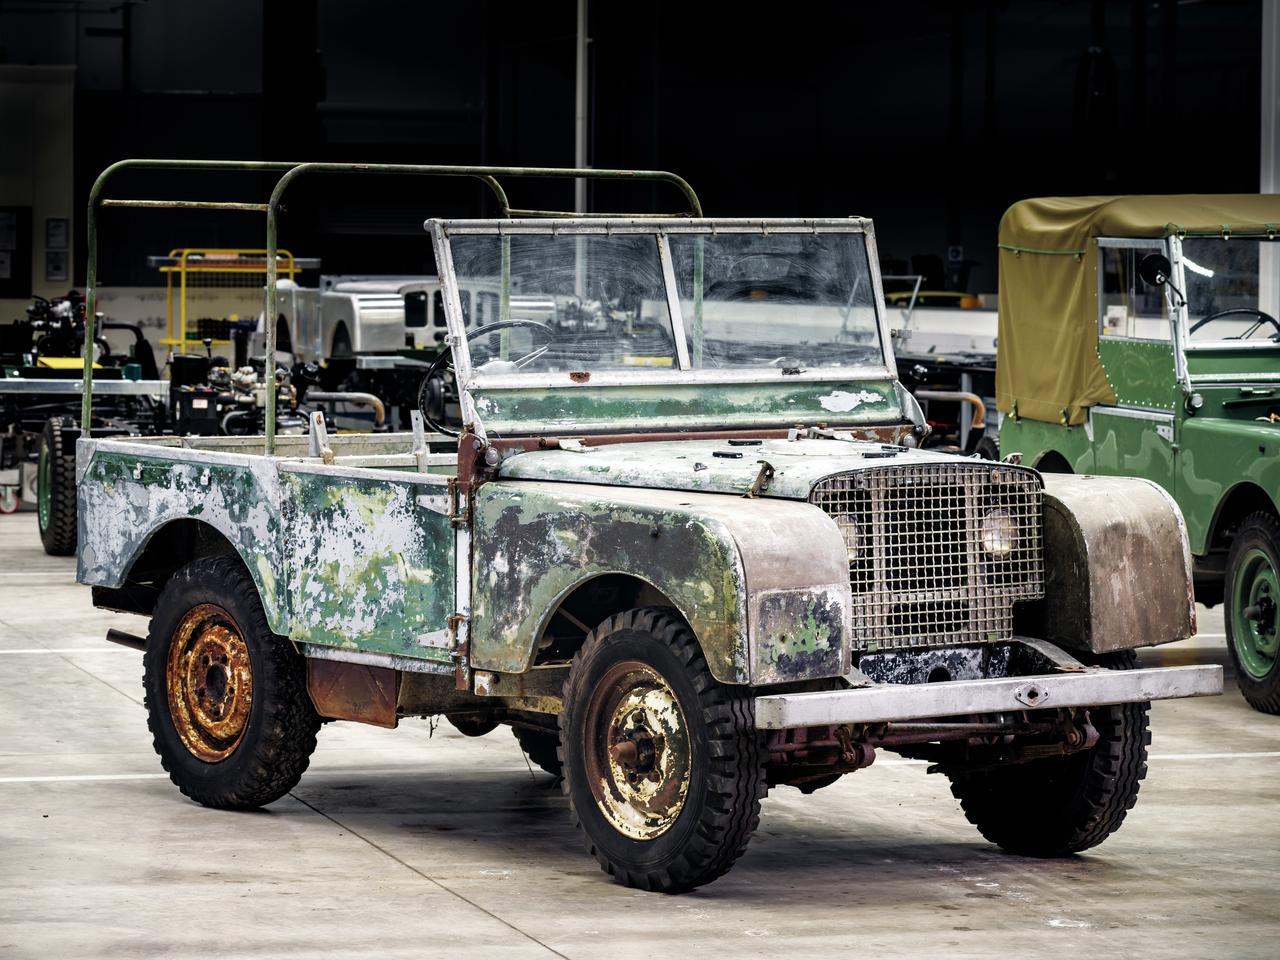 It doesn't look great now, but Jaguar Land Rover Classic is going to give it some love